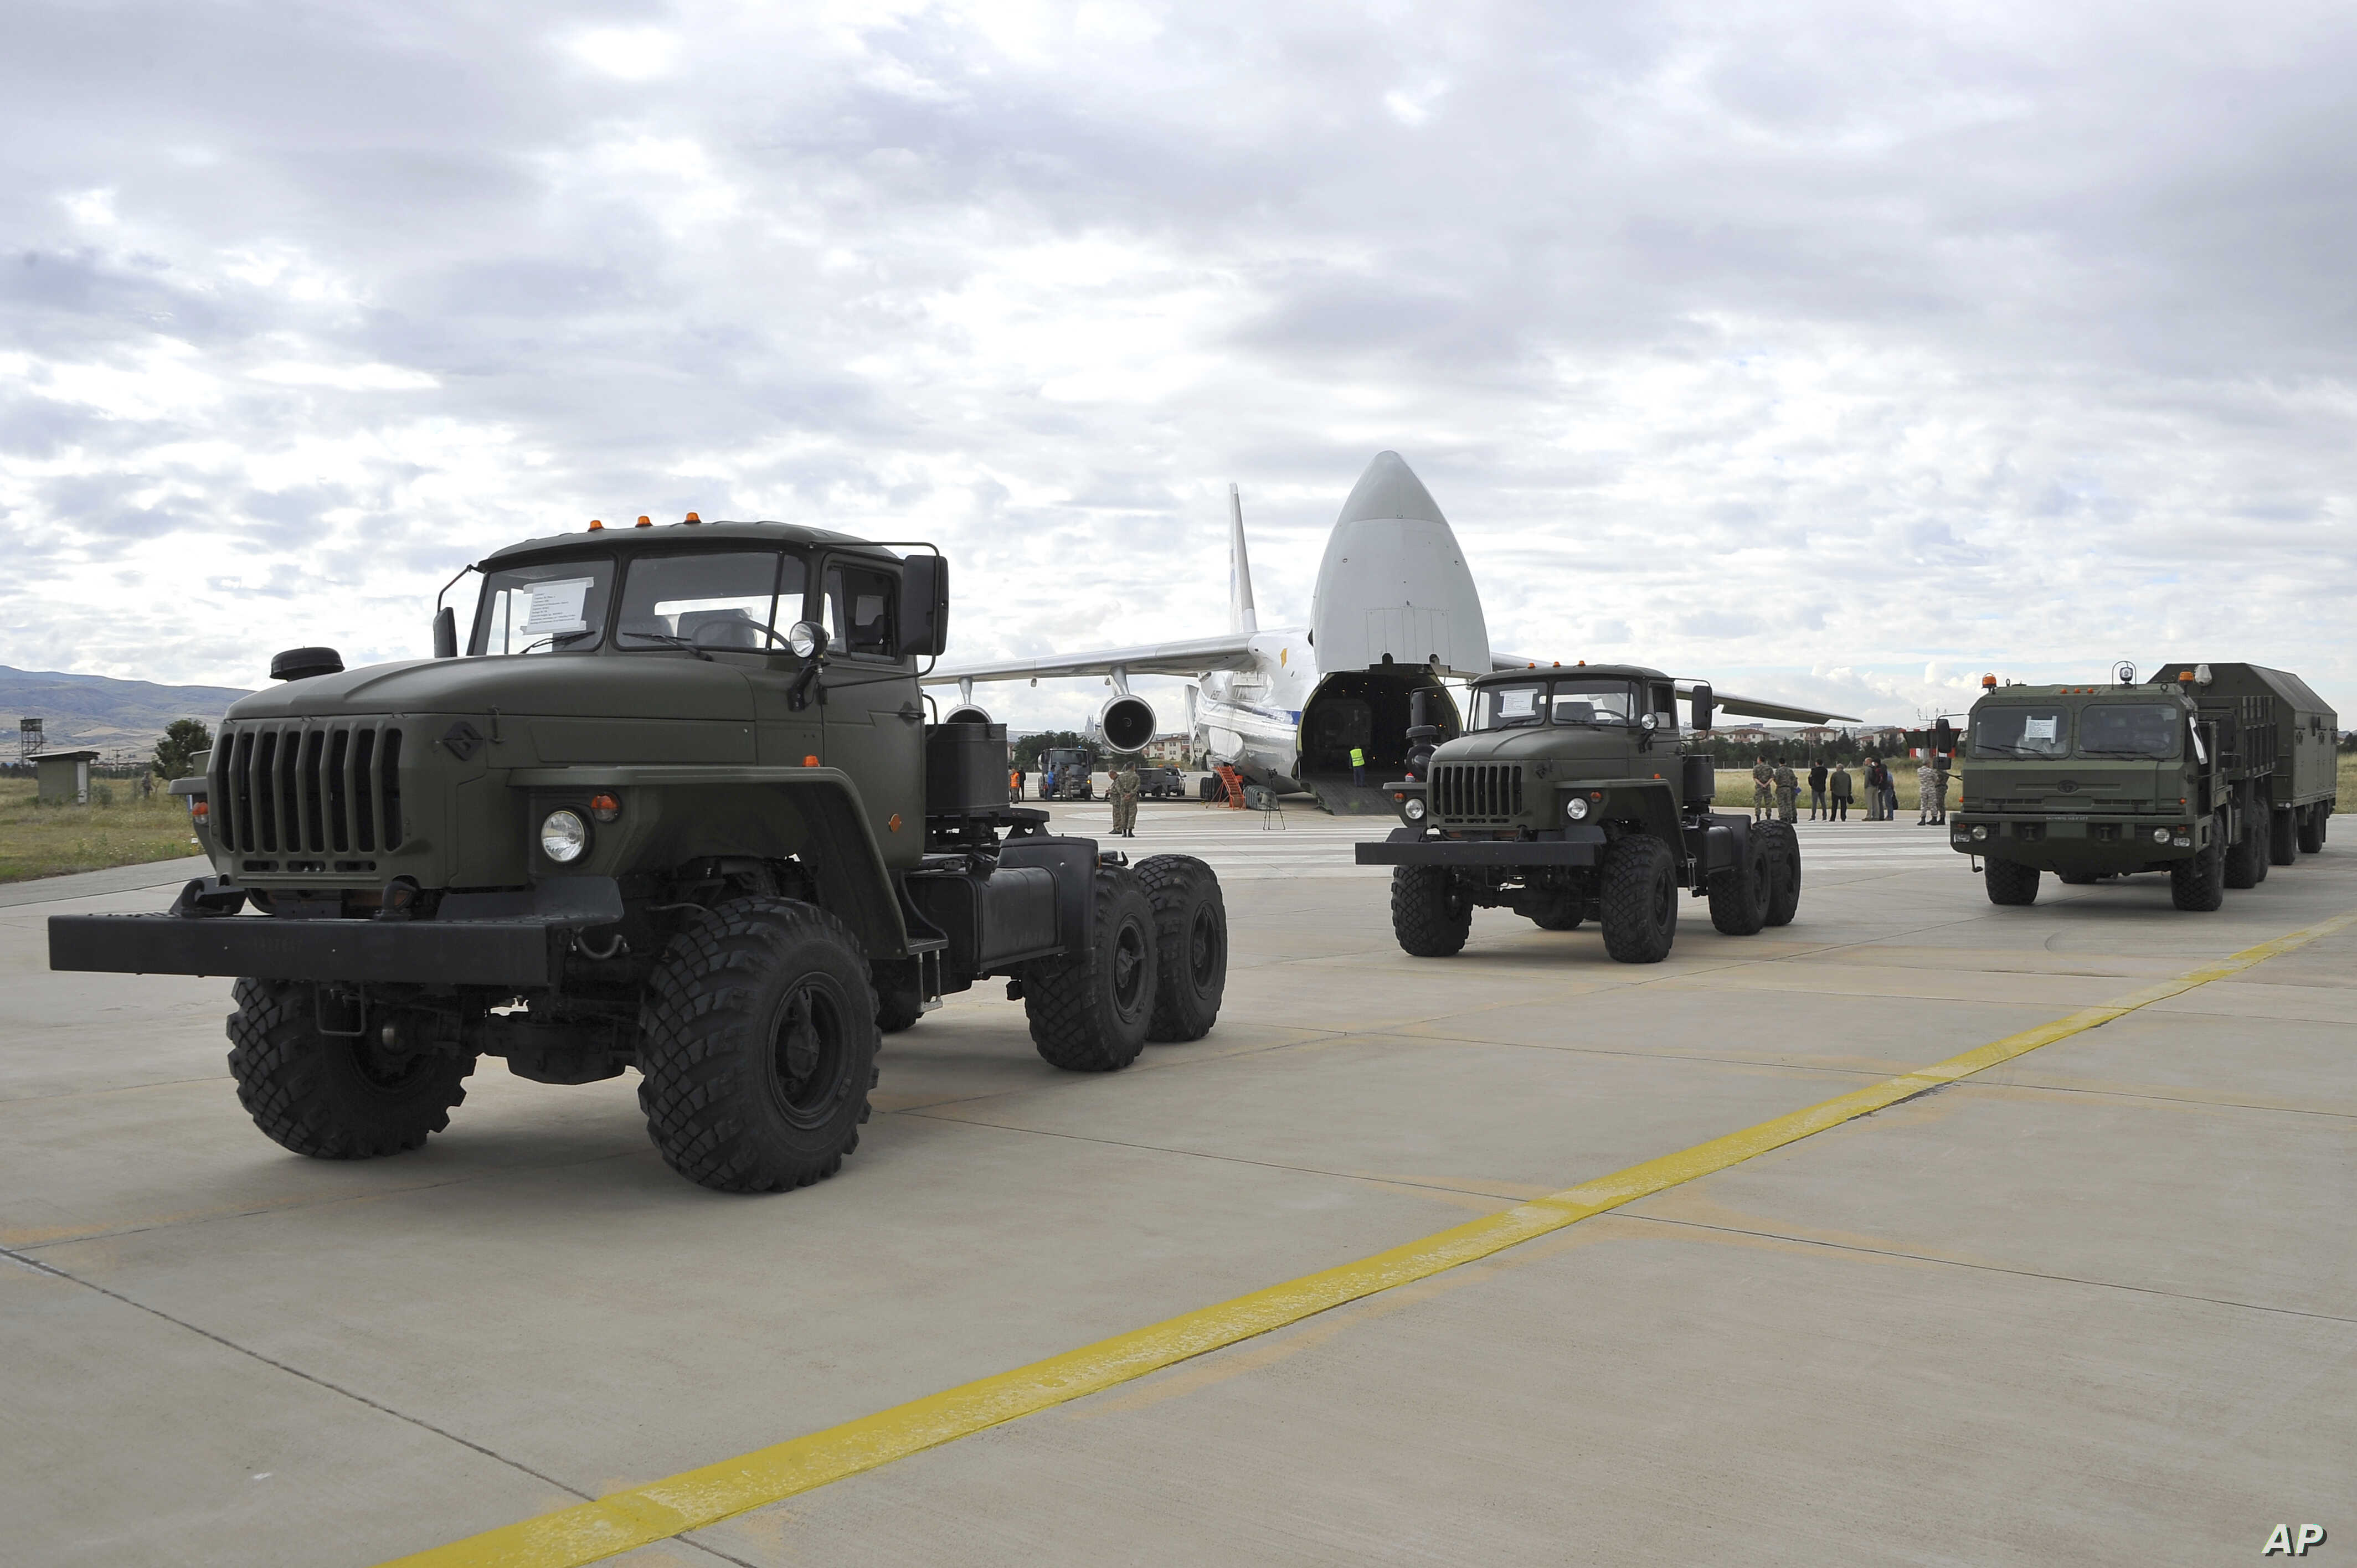 Military vehicles and equipment, parts of the S-400 air defense systems, are seen on the tarmac after they were unloaded from a Russian transport aircraft, at Murted military airport in Ankara, Turkey, July 12, 2019.